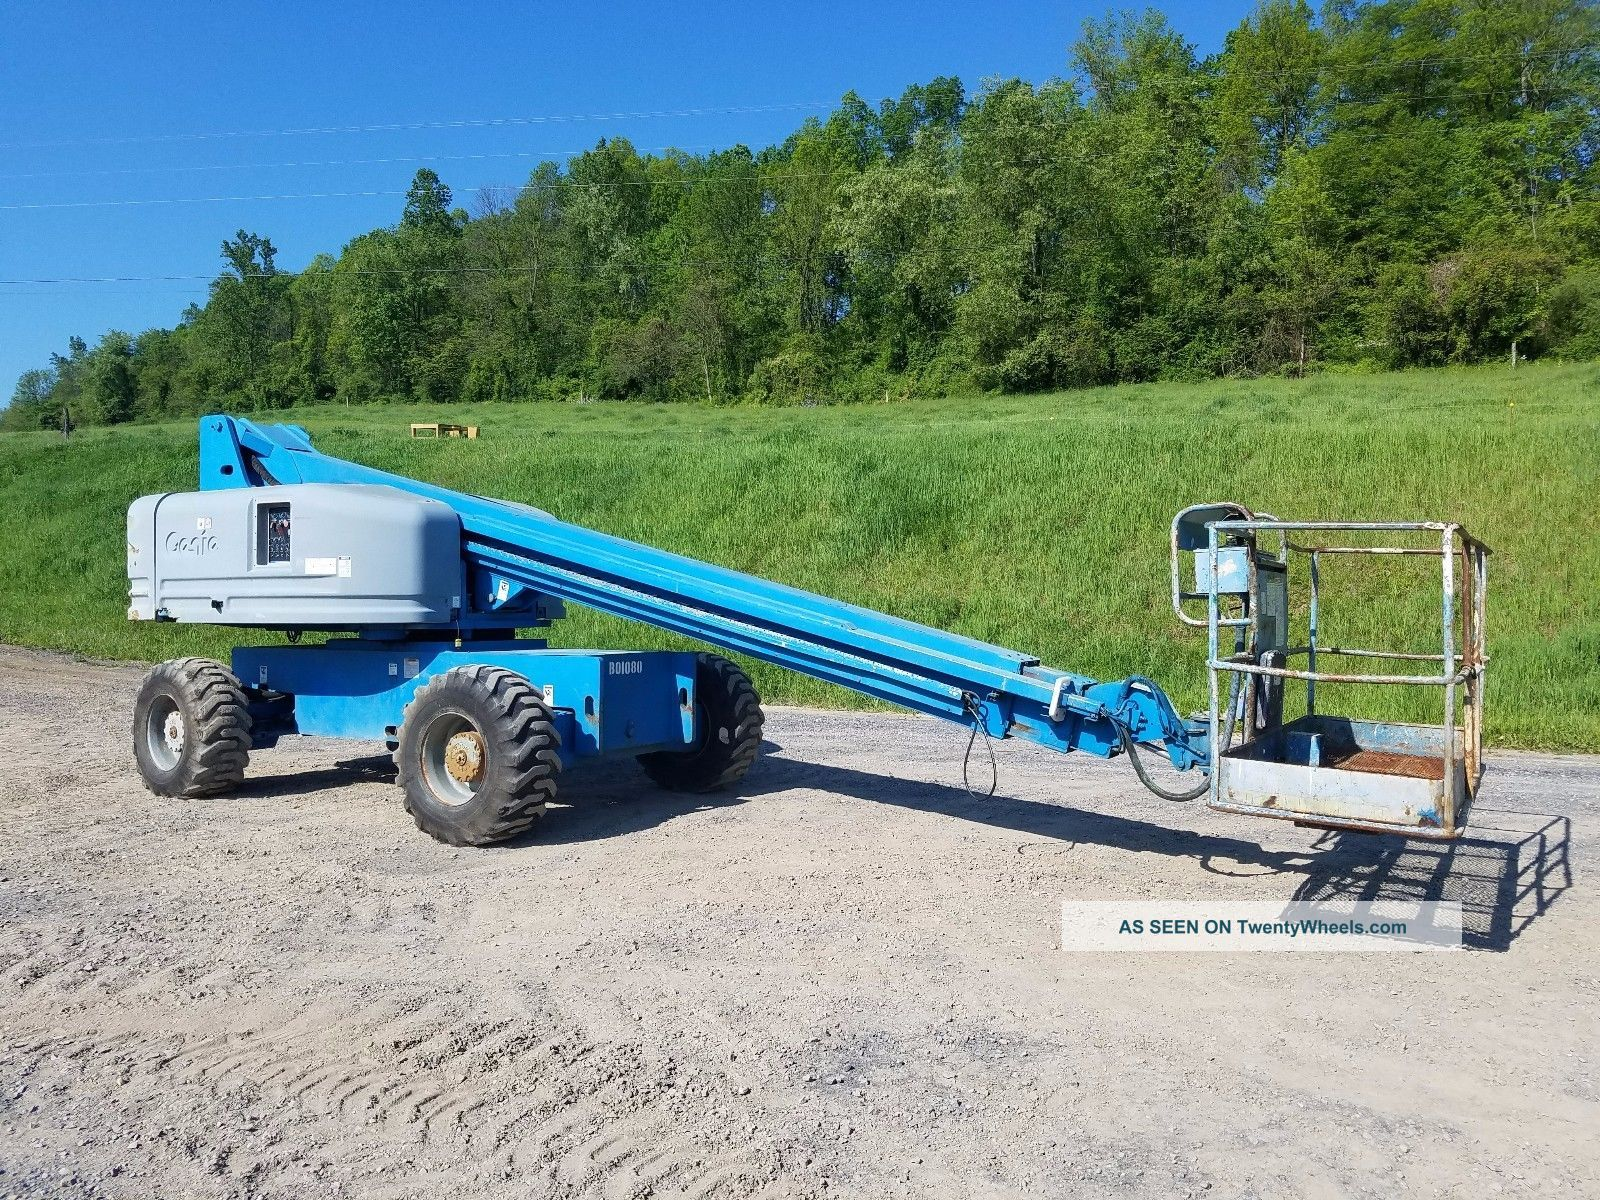 1999 Genie S60 Boom/man Lift Gasoline Engine Construction Machine Telescopic 4x4 Scissor & Boom Lifts photo